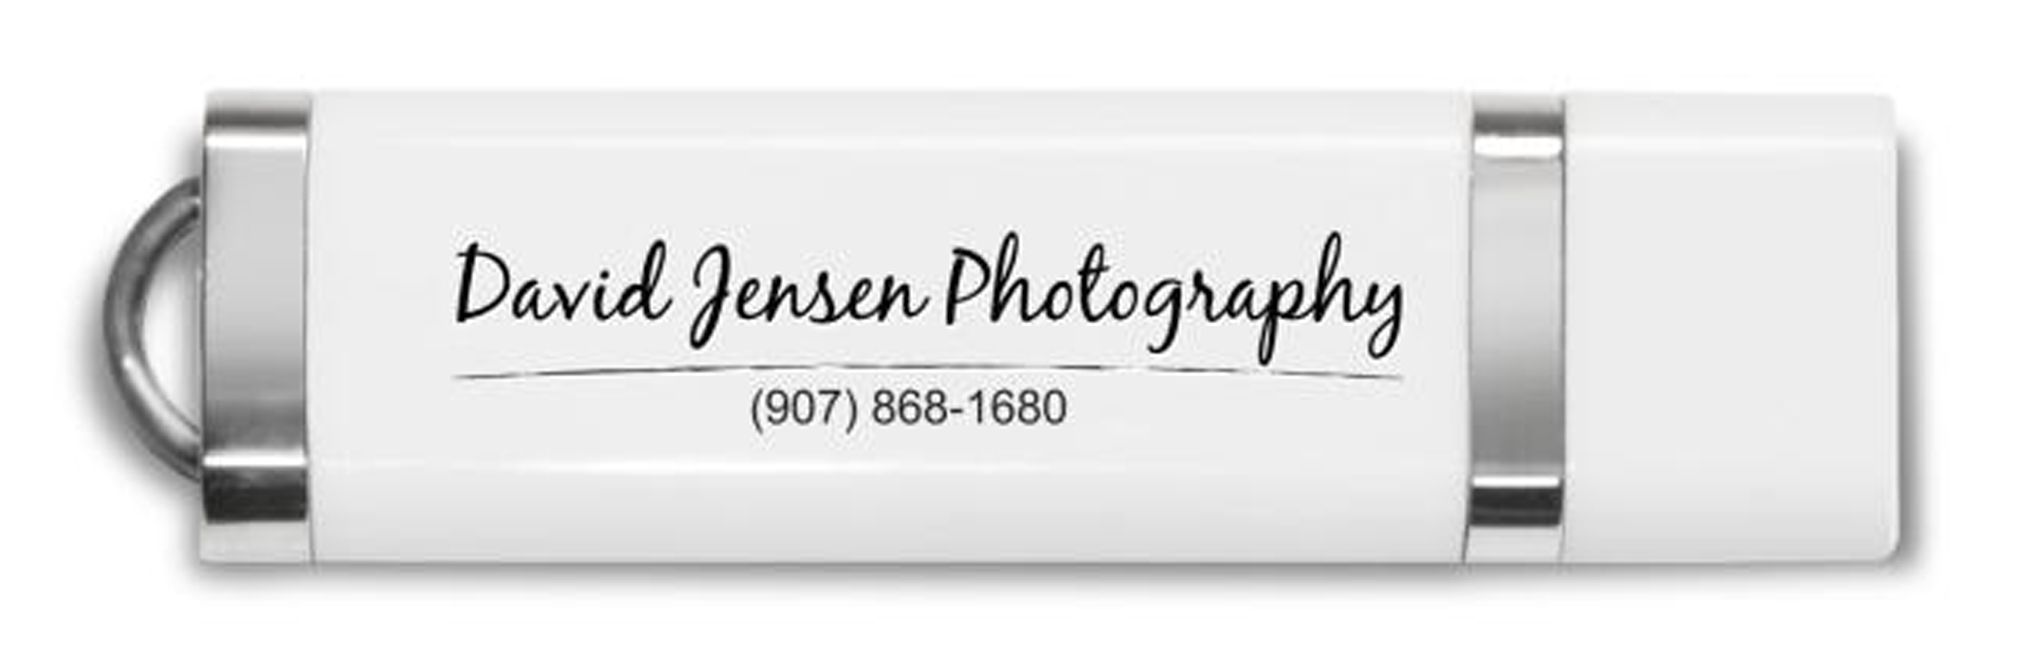 4 GB USB Drives that include your favorite high resolution images as offered in our different studio packages.